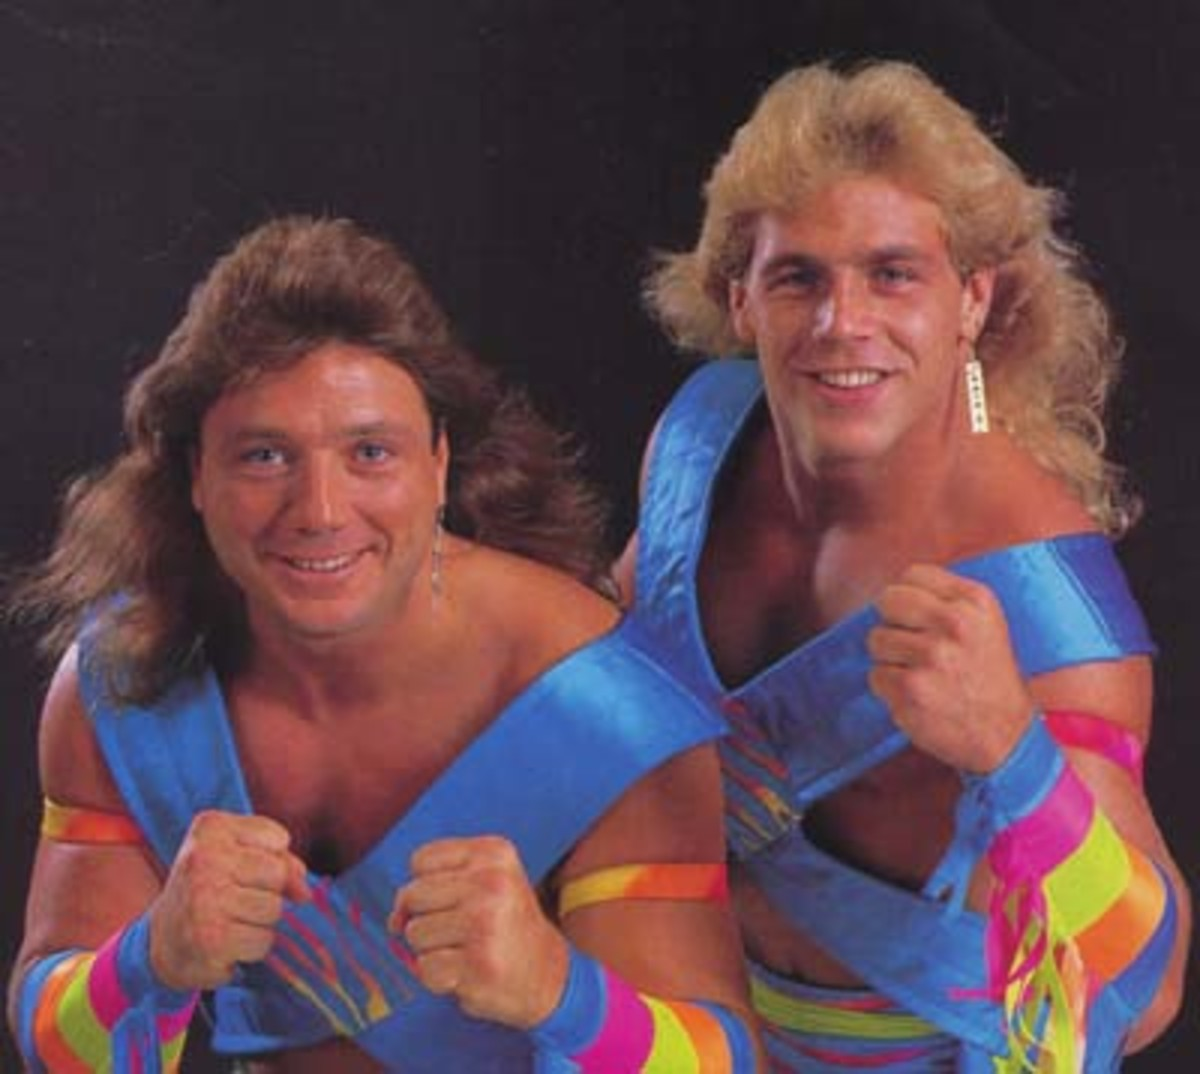 """Marty Jannetty and Shawn Michaels as """"The Rockers"""""""